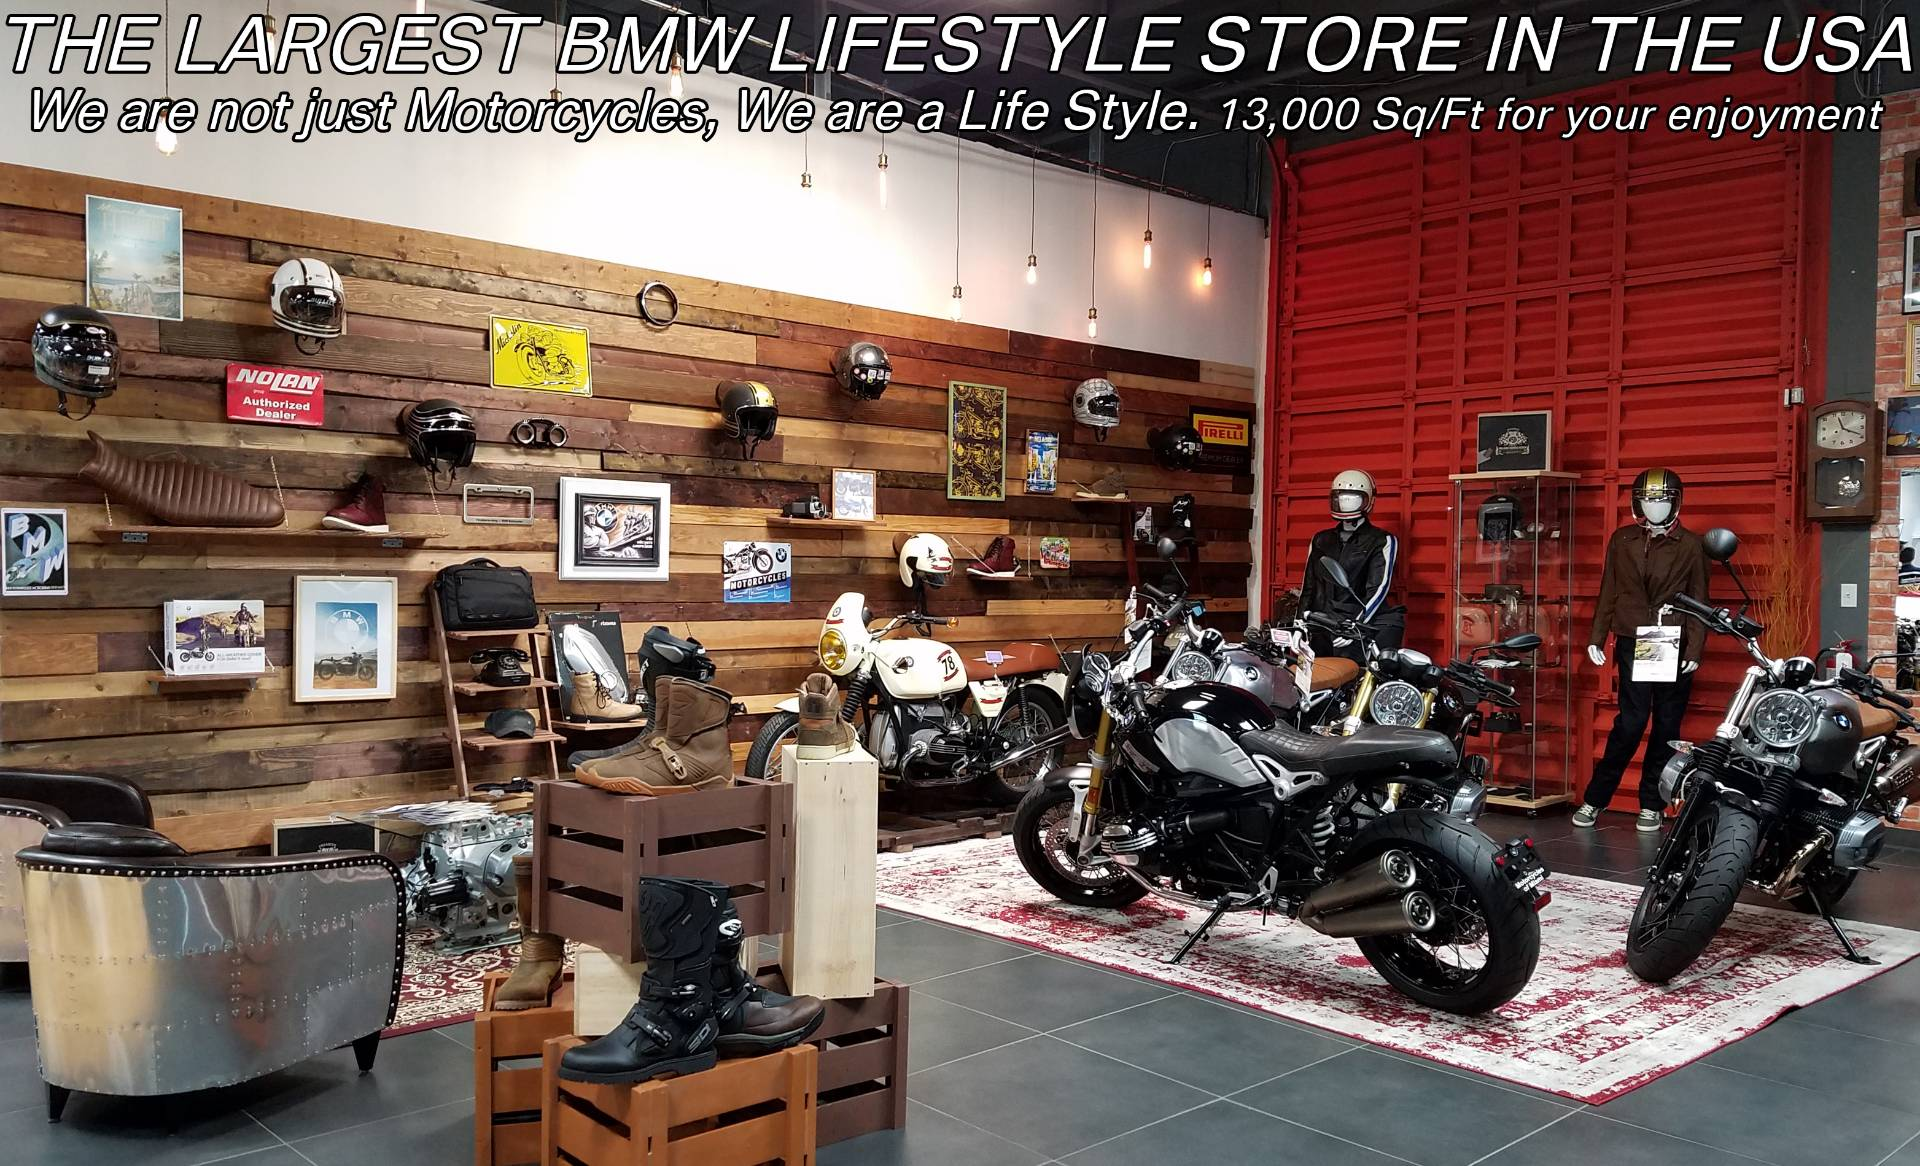 New 2019 BMW R 1250 GS for sale, BMW R 1250GS for sale, BMW Motorcycle GS, new BMW GS, Spirit of GS, BMW Motorcycles of Miami, Motorcycles of Miami, Motorcycles Miami, New Motorcycles, Used Motorcycles, pre-owned. #BMWMotorcyclesOfMiami #MotorcyclesOfMiami. - Photo 46